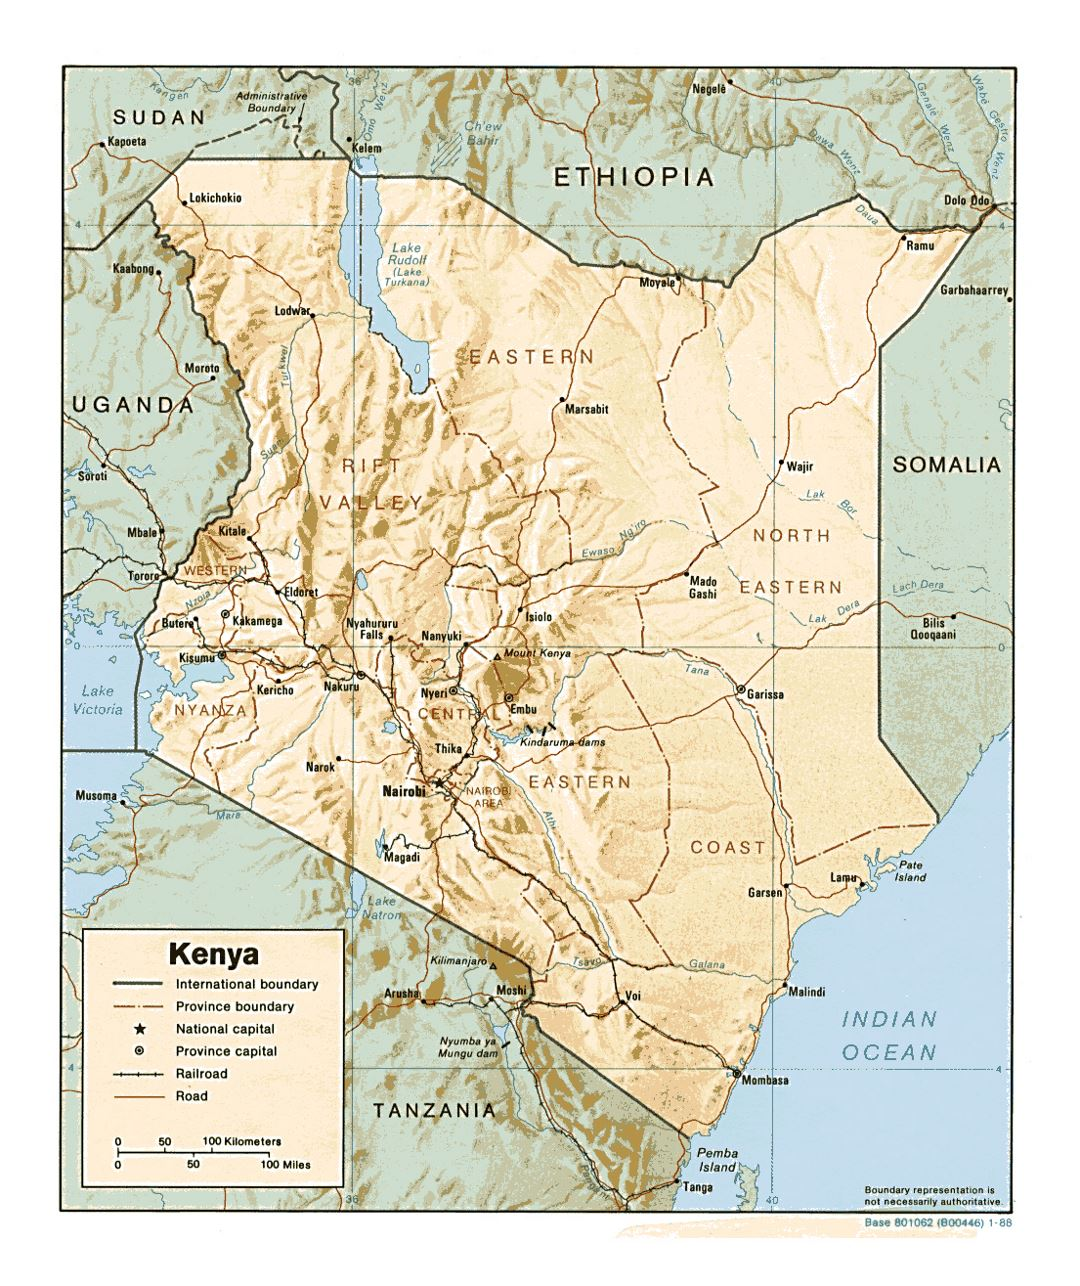 Detailed political and administrative map of Kenya with relief, roads, railroads and major cities - 1988